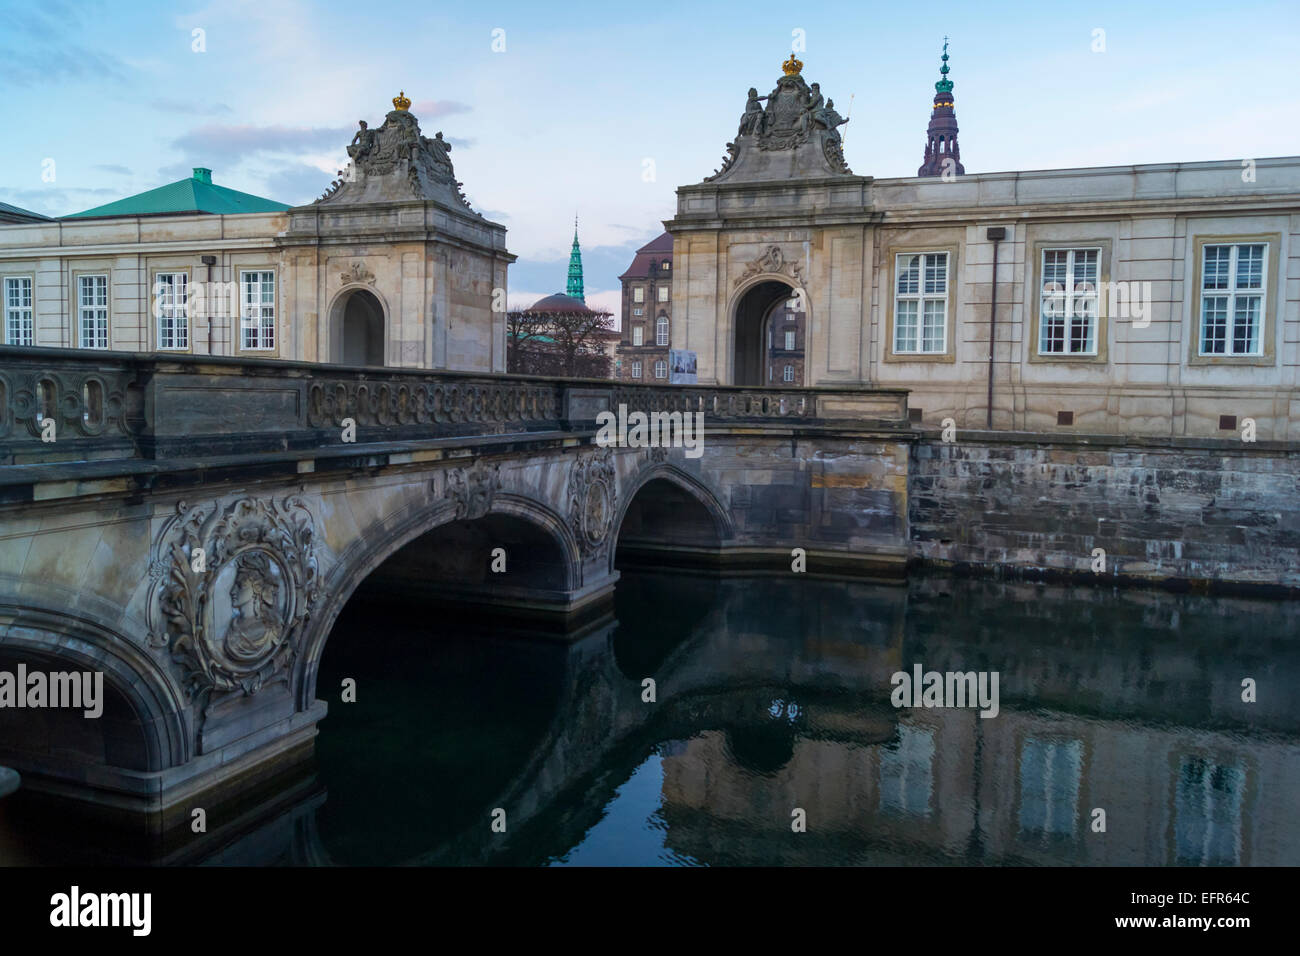 Marmorbroen (Marble Bridge) over Frederiksholms Canal with Christiansborg Palace in the background, Copenhagen, Stock Photo